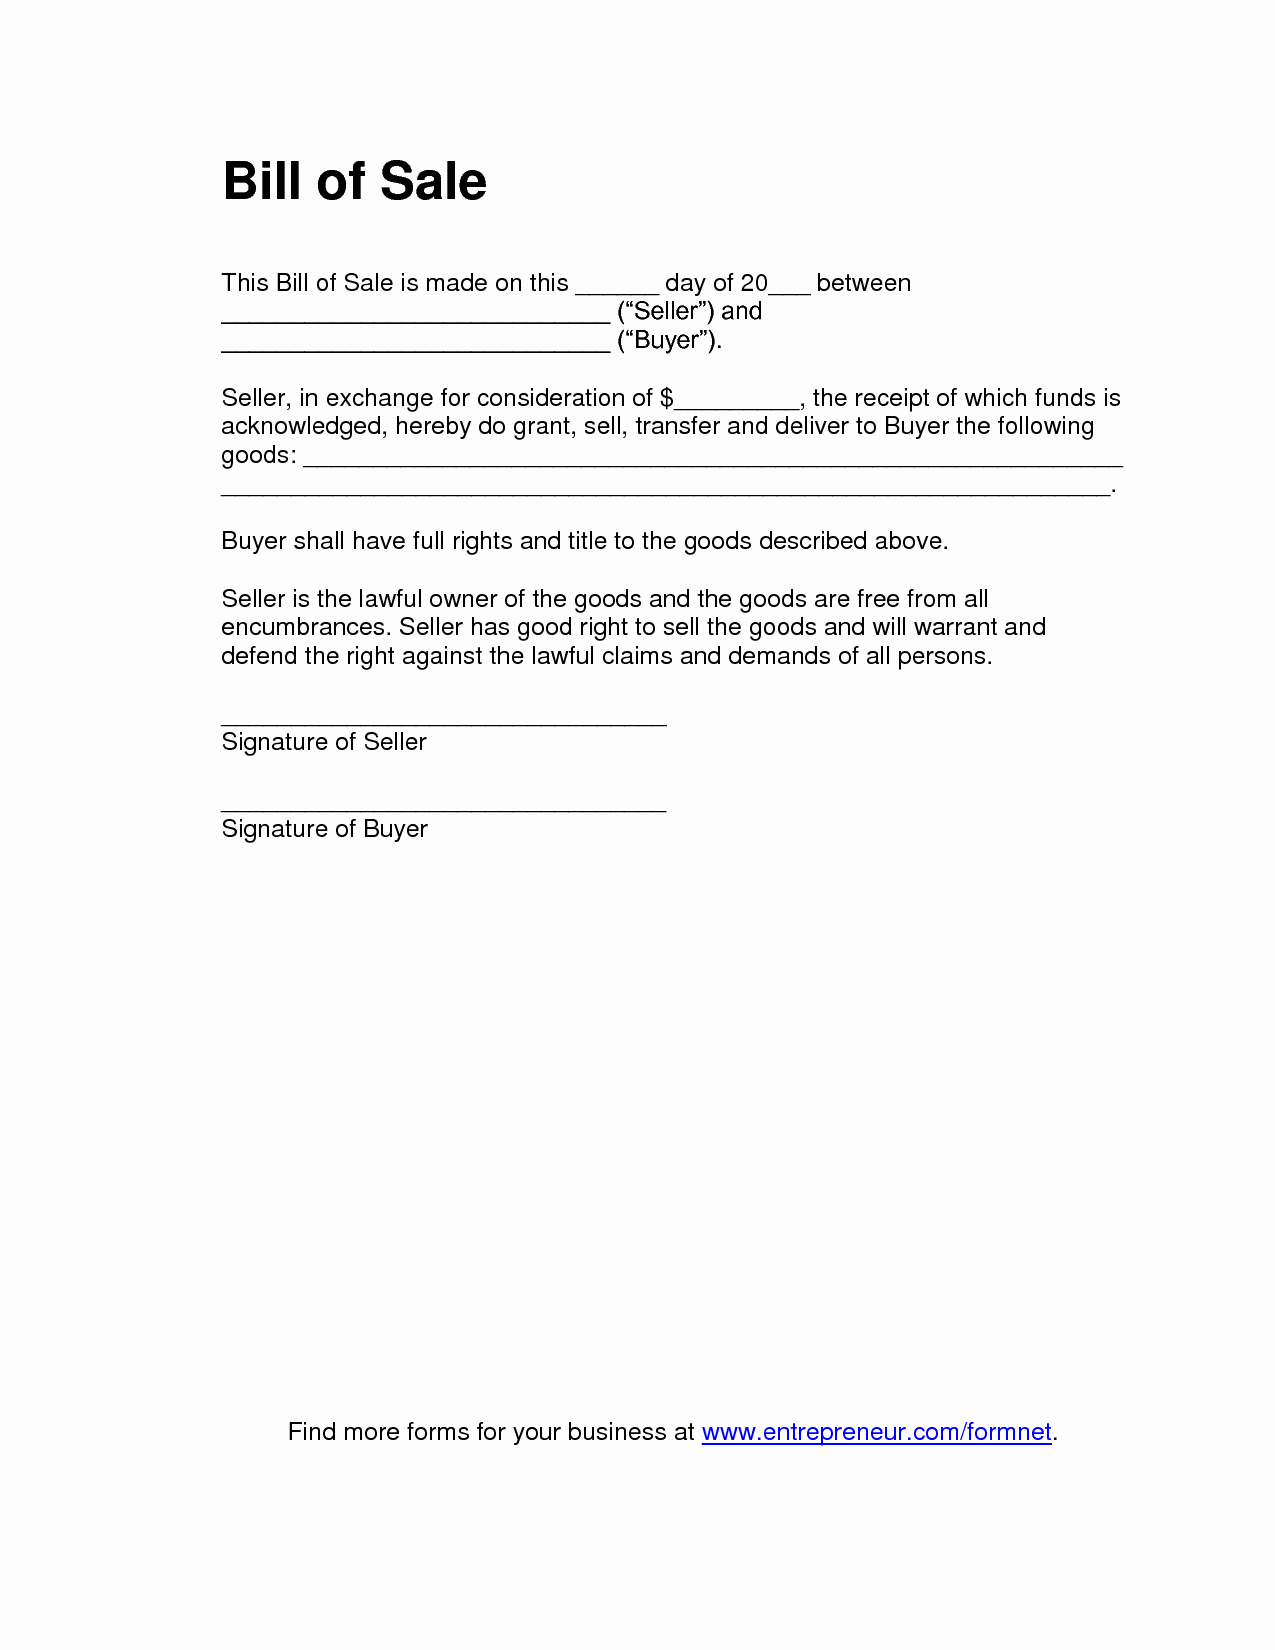 Bill Of Sale Printable Template Beautiful Free Printable Bill Of Sale Templates form Generic